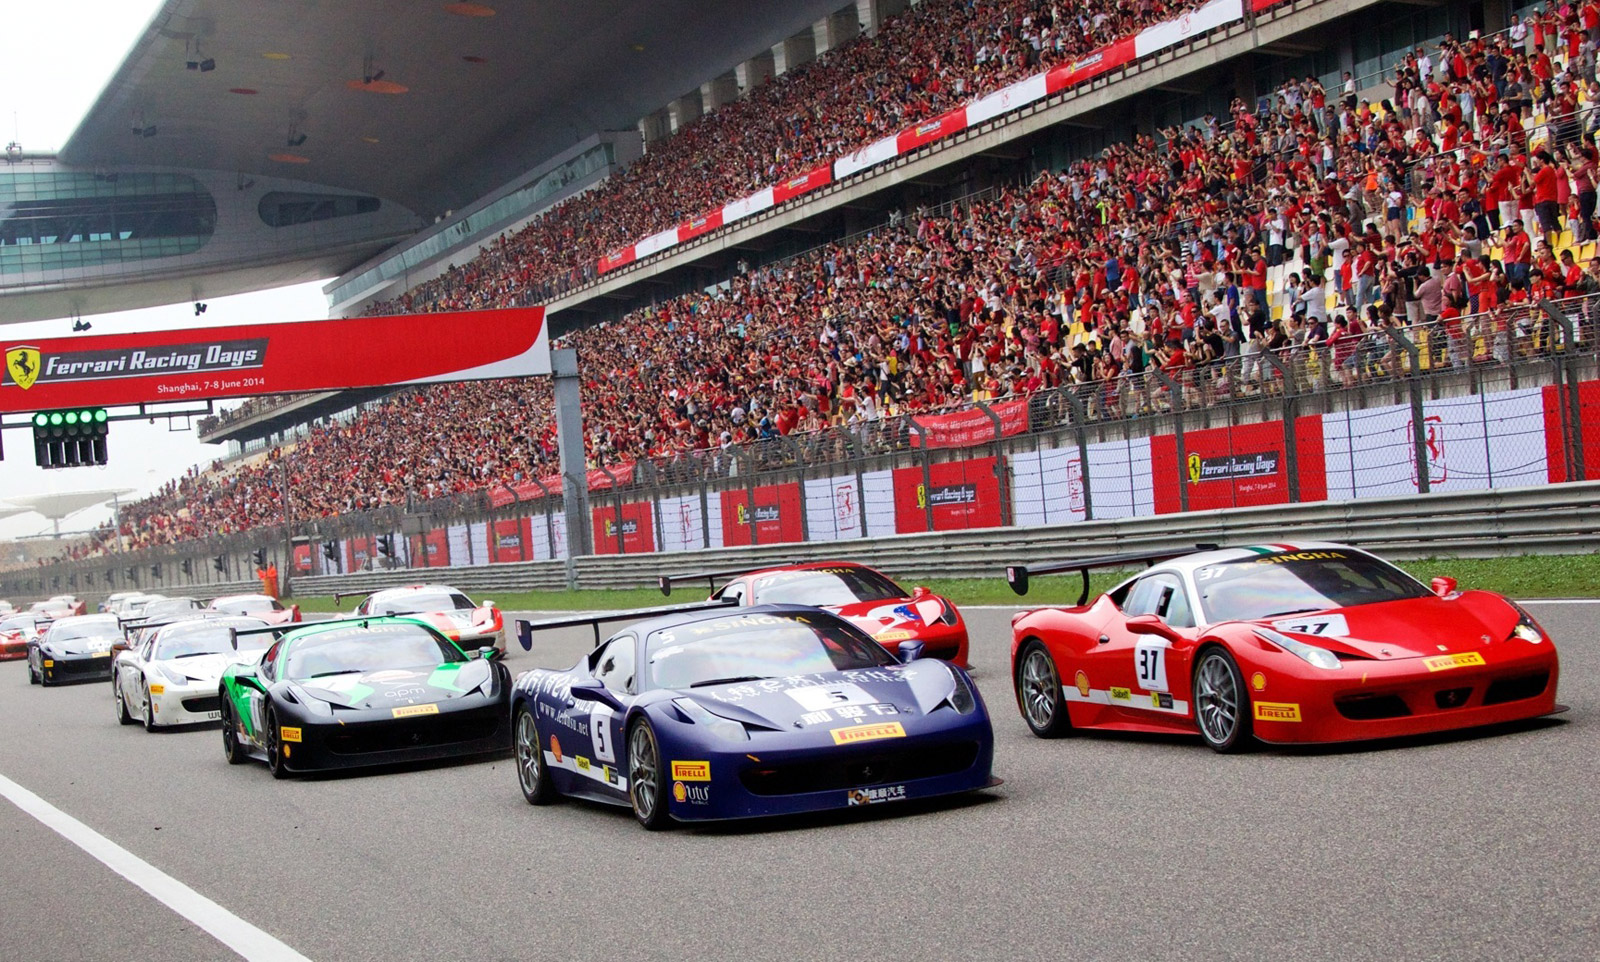 Ferrari Forms Partnership With Shangri La Hotels And Resorts